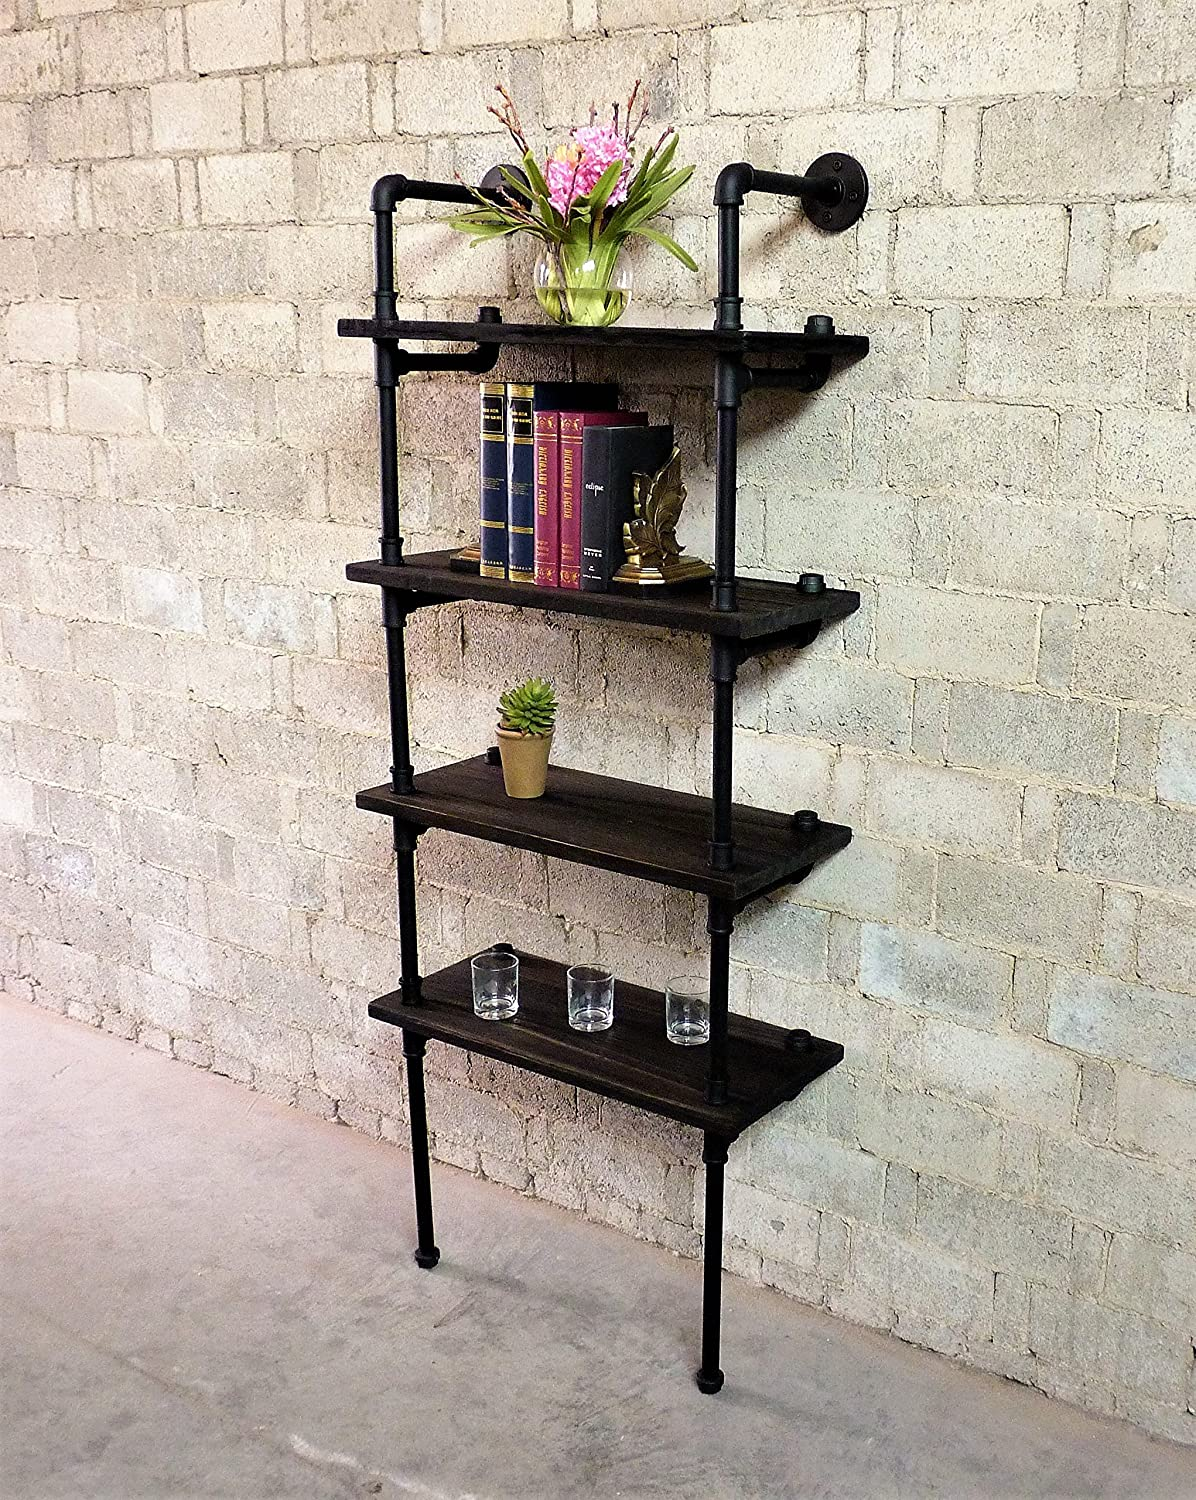 Furniture Pipeline Industrial Tall Wall Mounted 4-Shelf Open Etagere Pipe Bookcase, Metal with Reclaimed Wood Finish